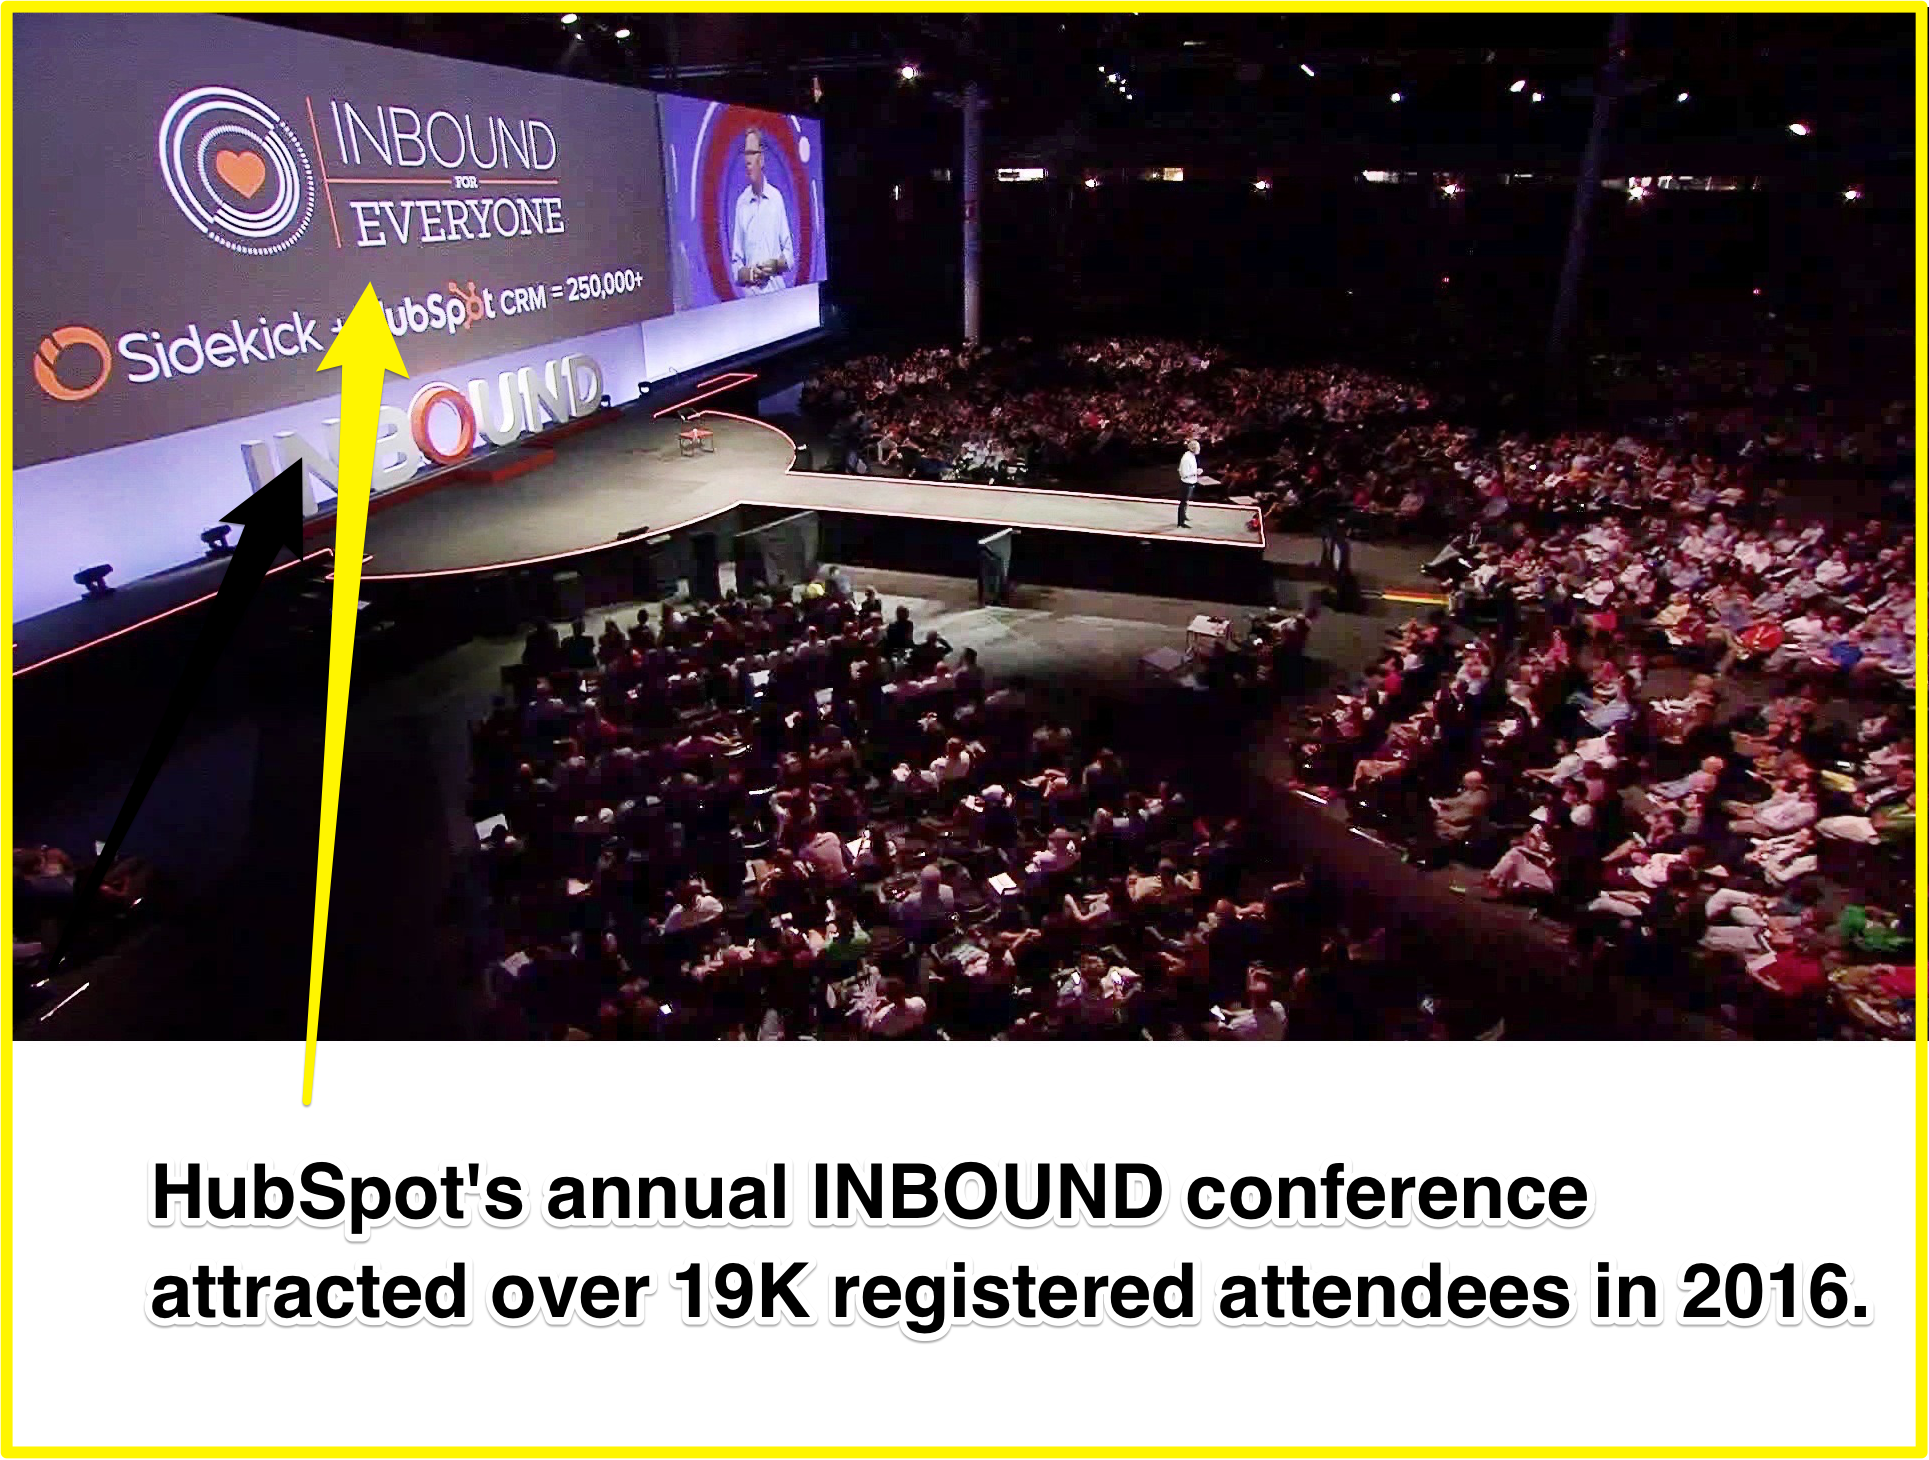 Screenshot showing information about a hubspot conference